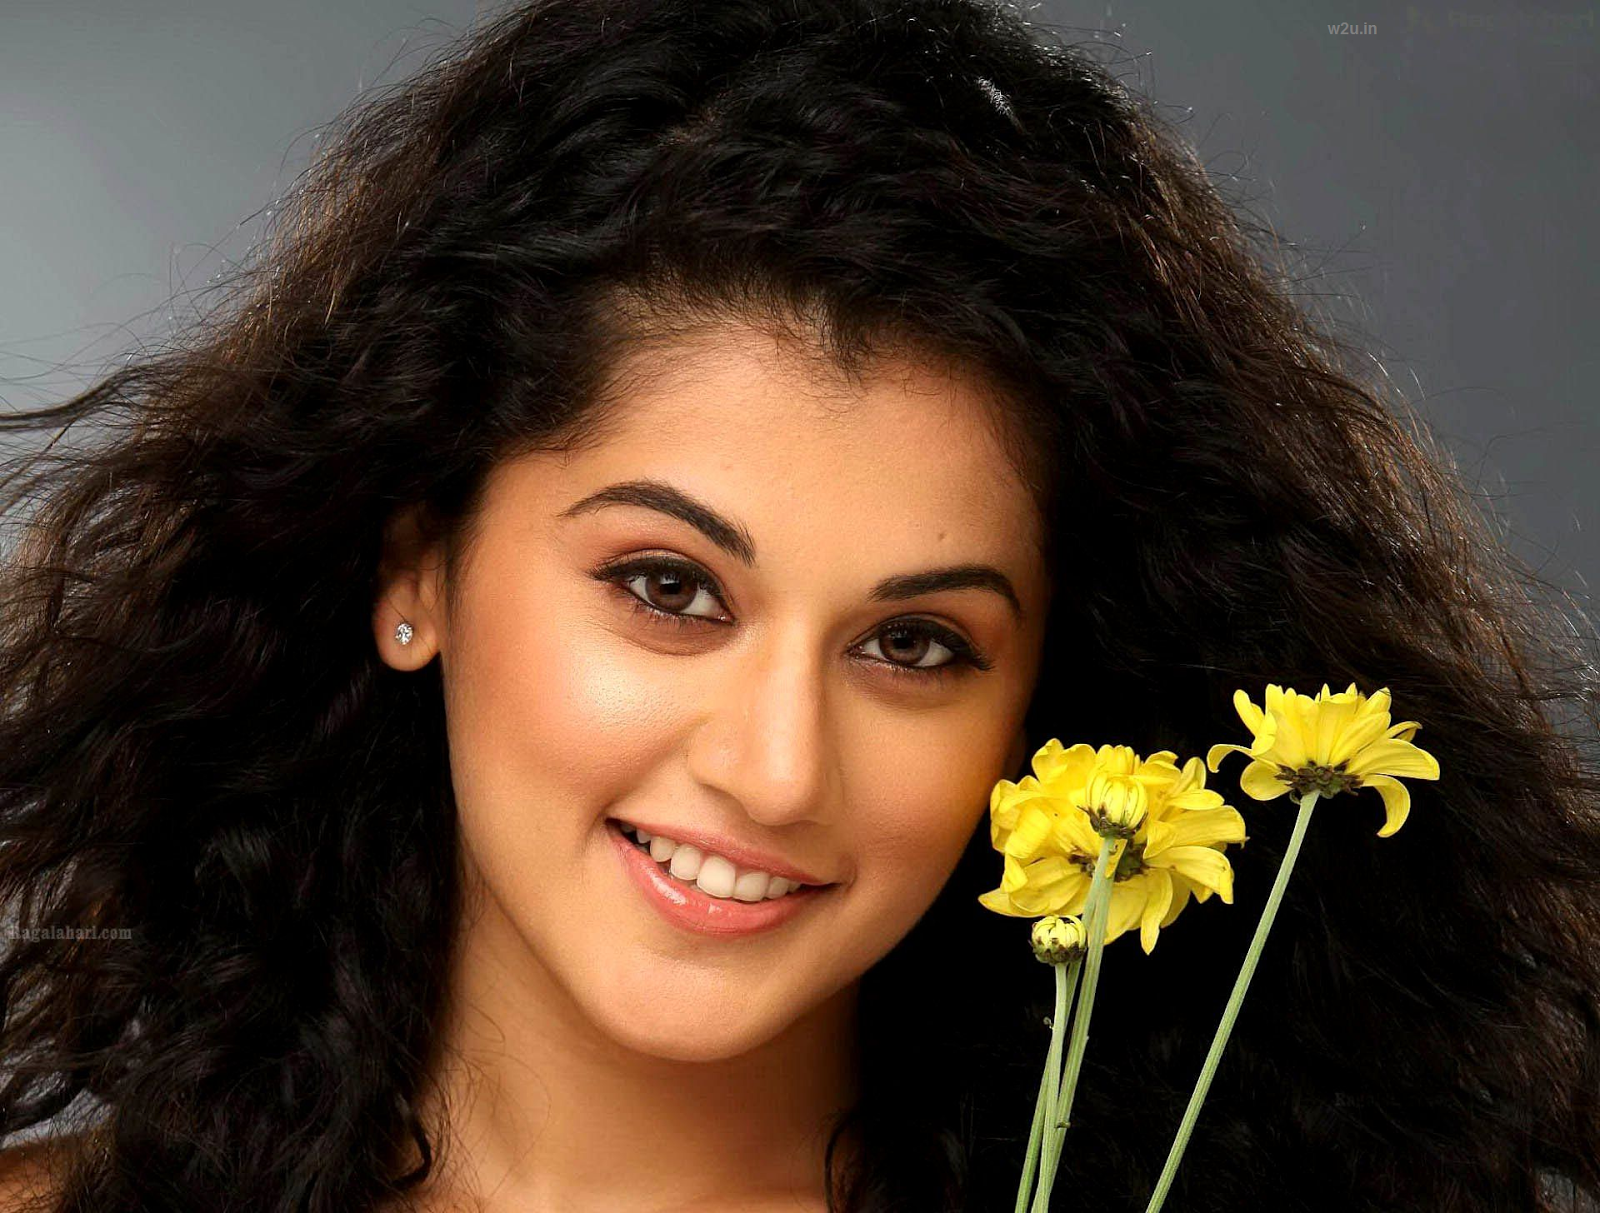 Actress Taapsee Pannu Latest Hd Wallpapers And Images Download Taapsee Pannu Is An Indian Model And Actr Taapsee Pannu Becoming An Actress Cute Baby Pictures